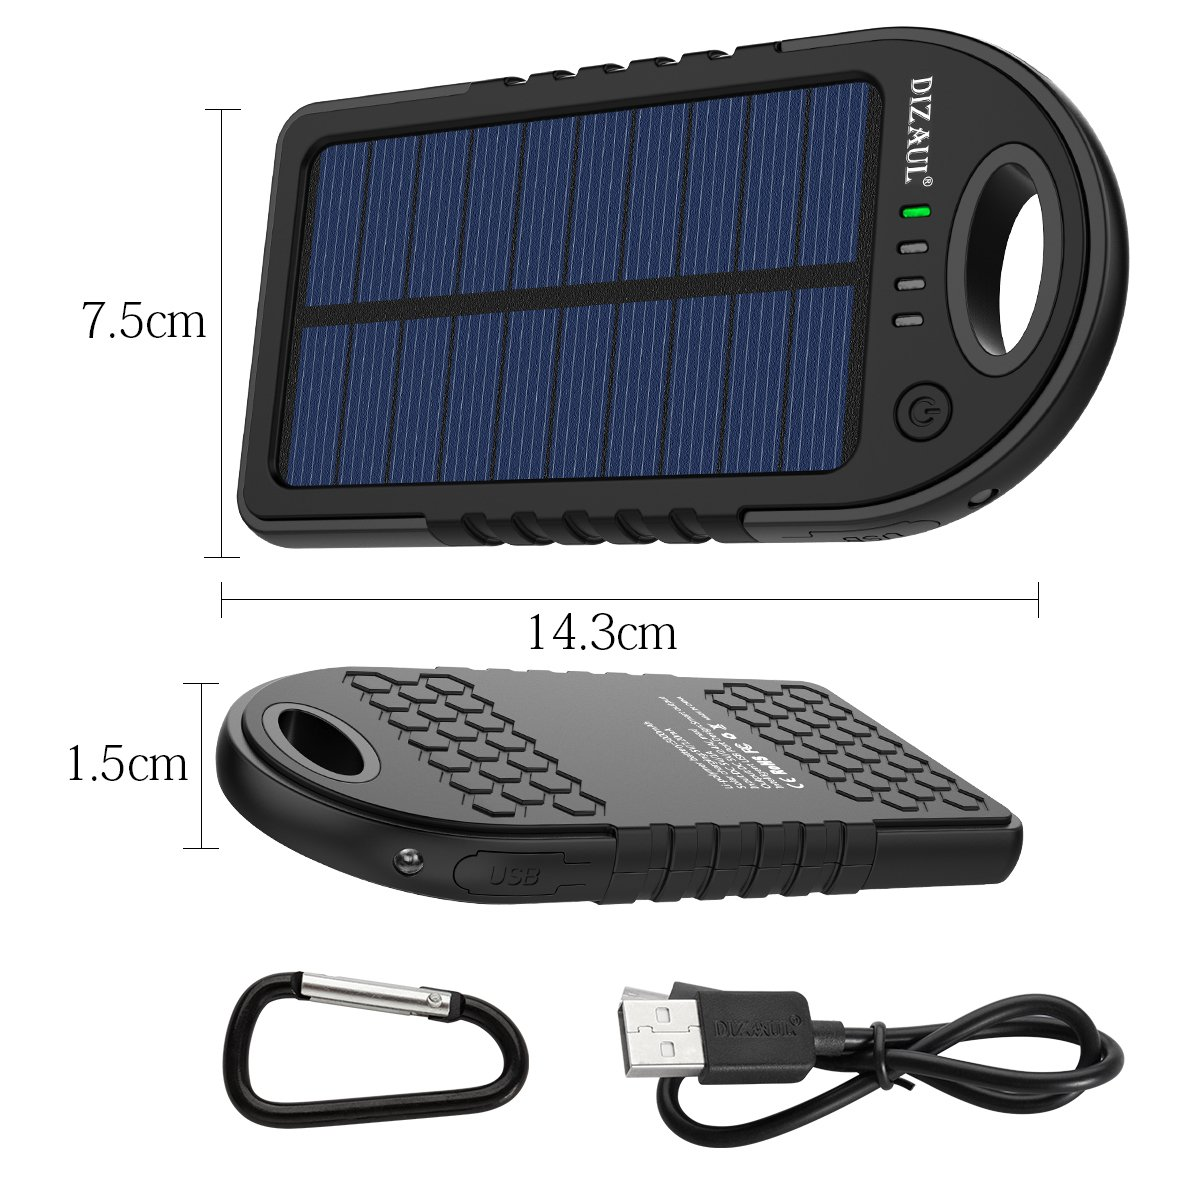 Solar Charger, Dizaul 5000mAh Portable Solar Power Bank Waterproof/Shockproof/Dustproof Dual USB Battery Bank for Cell Phone, Samsung, Android Phones, Windows Phones, GoPro Camera, GPS and More by dizauL (Image #6)